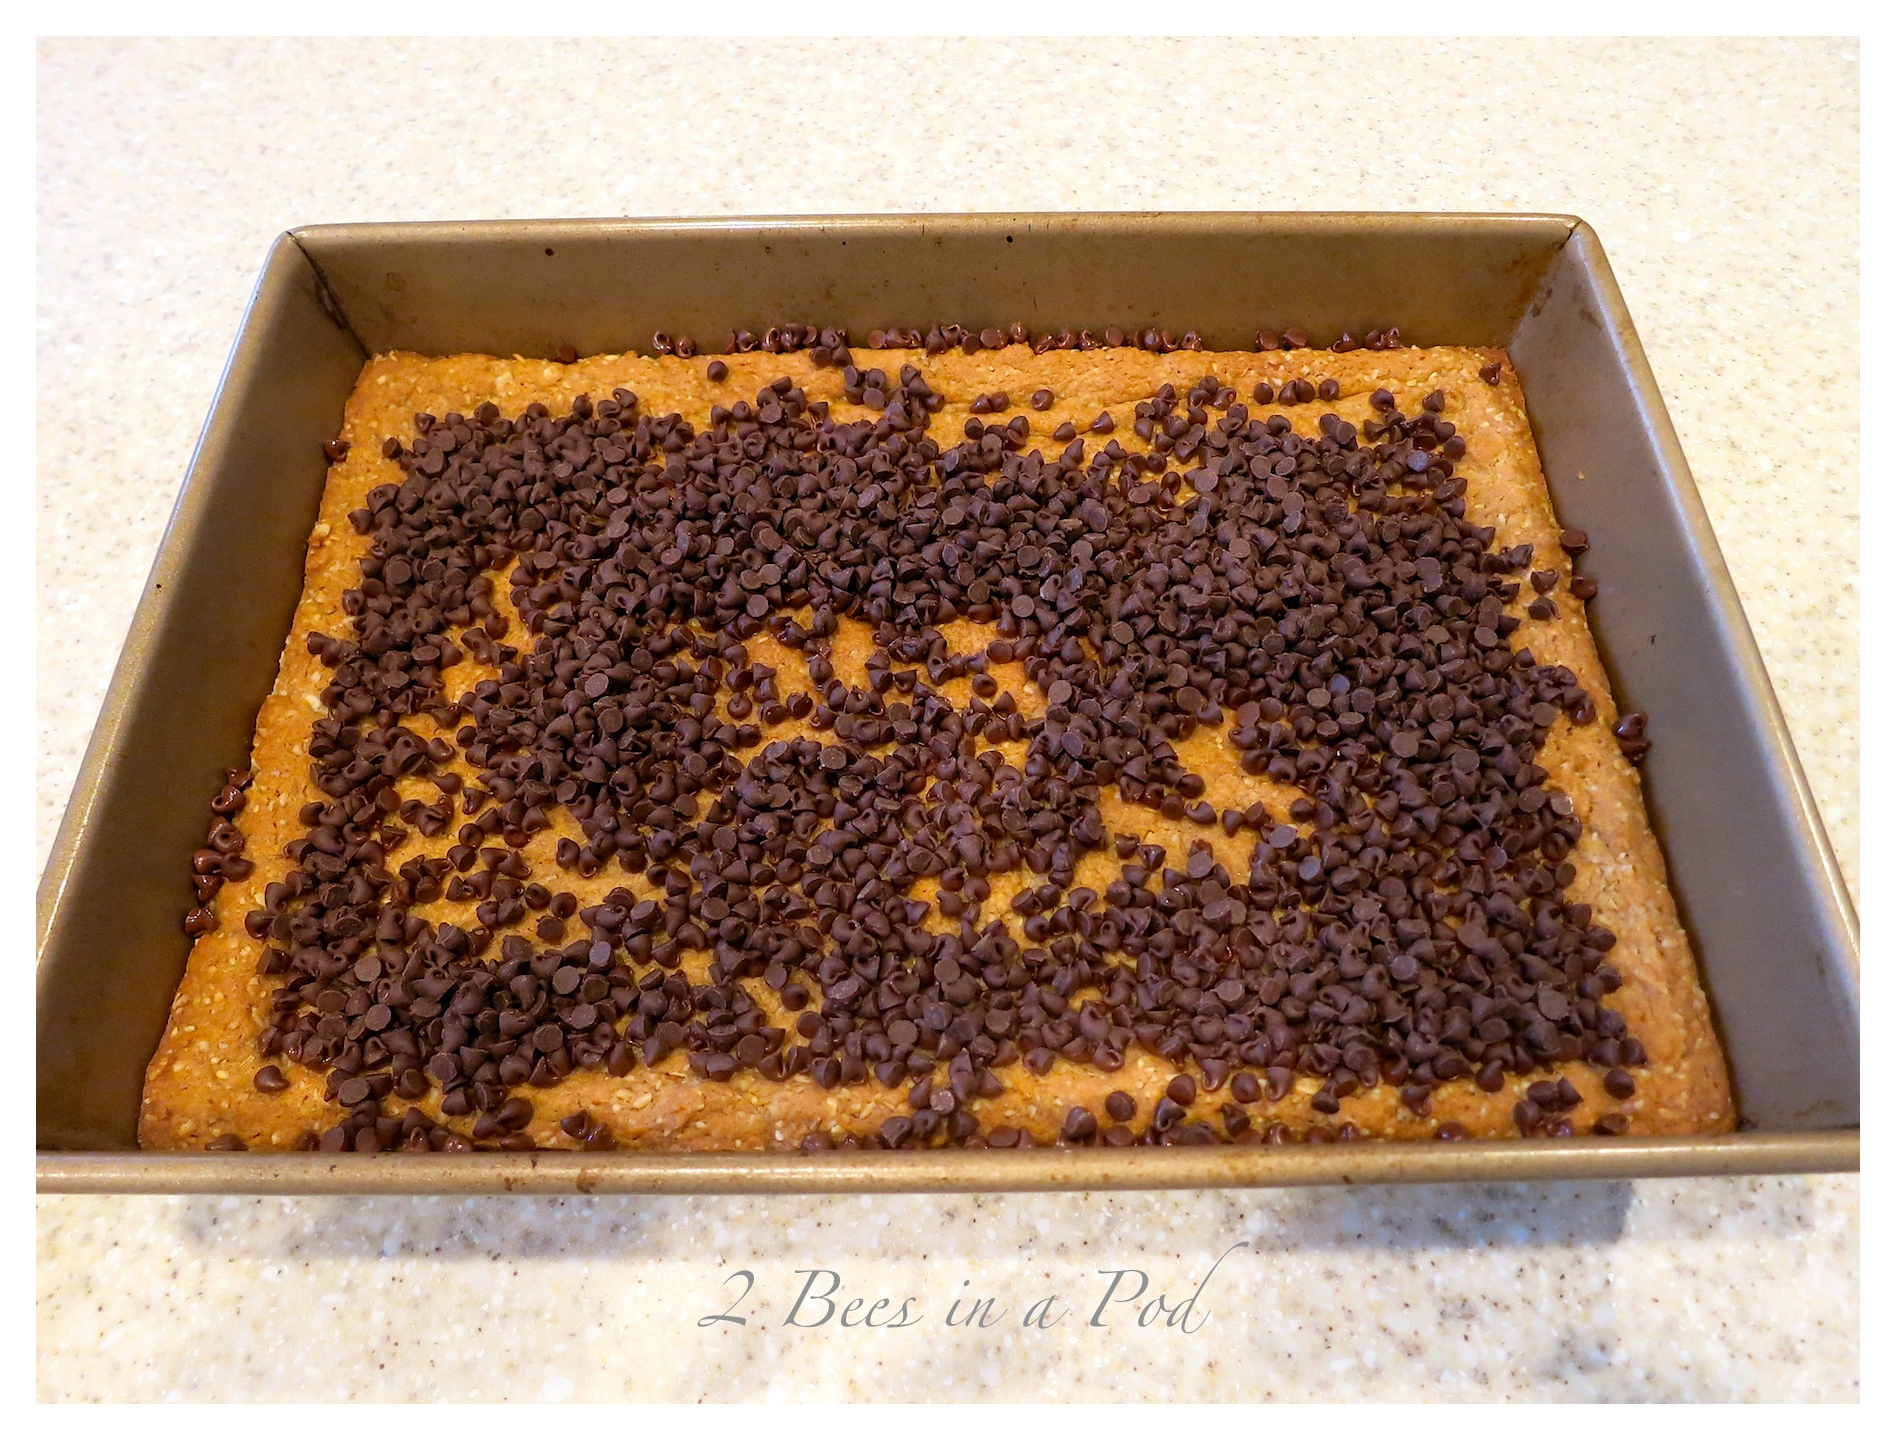 Delicious Peanut Butter Fingers. Wonderful and gooey bars with chocolate and peanut butter...it doesn't get any better than that!